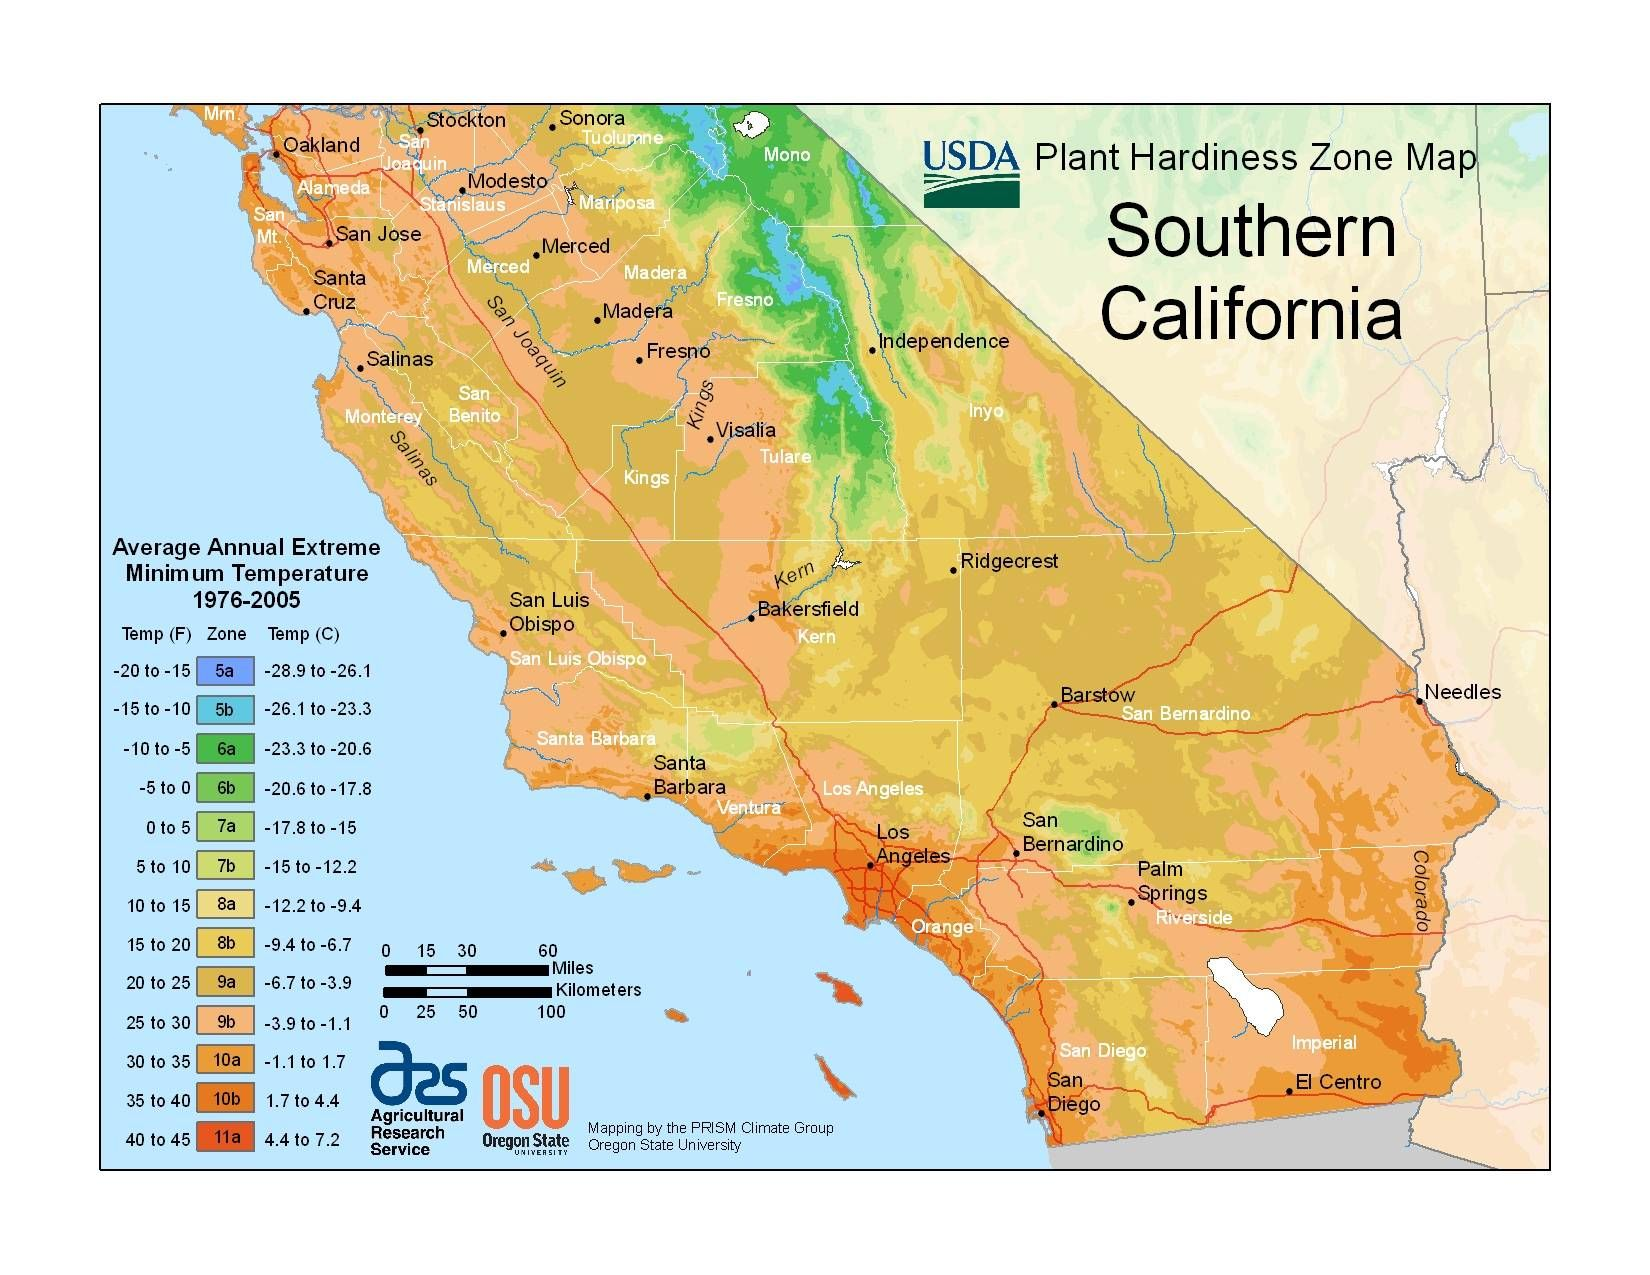 southern california hardiness zone map i guess i'm 10b or